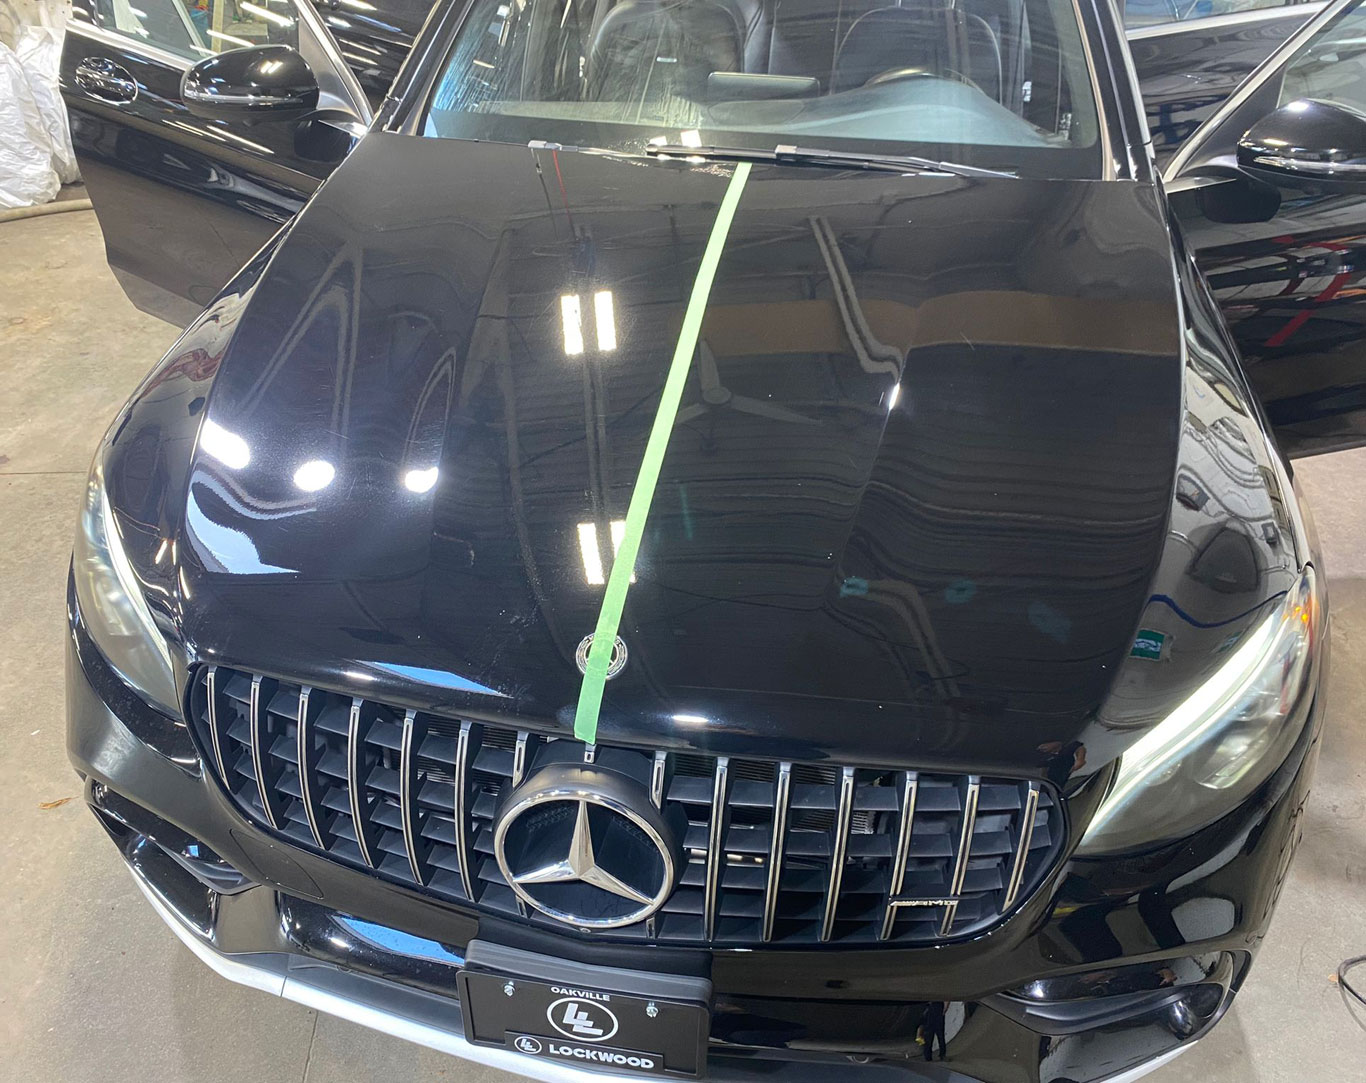 Spotless Auto Detailing - Gallery 010 - Paint Correction